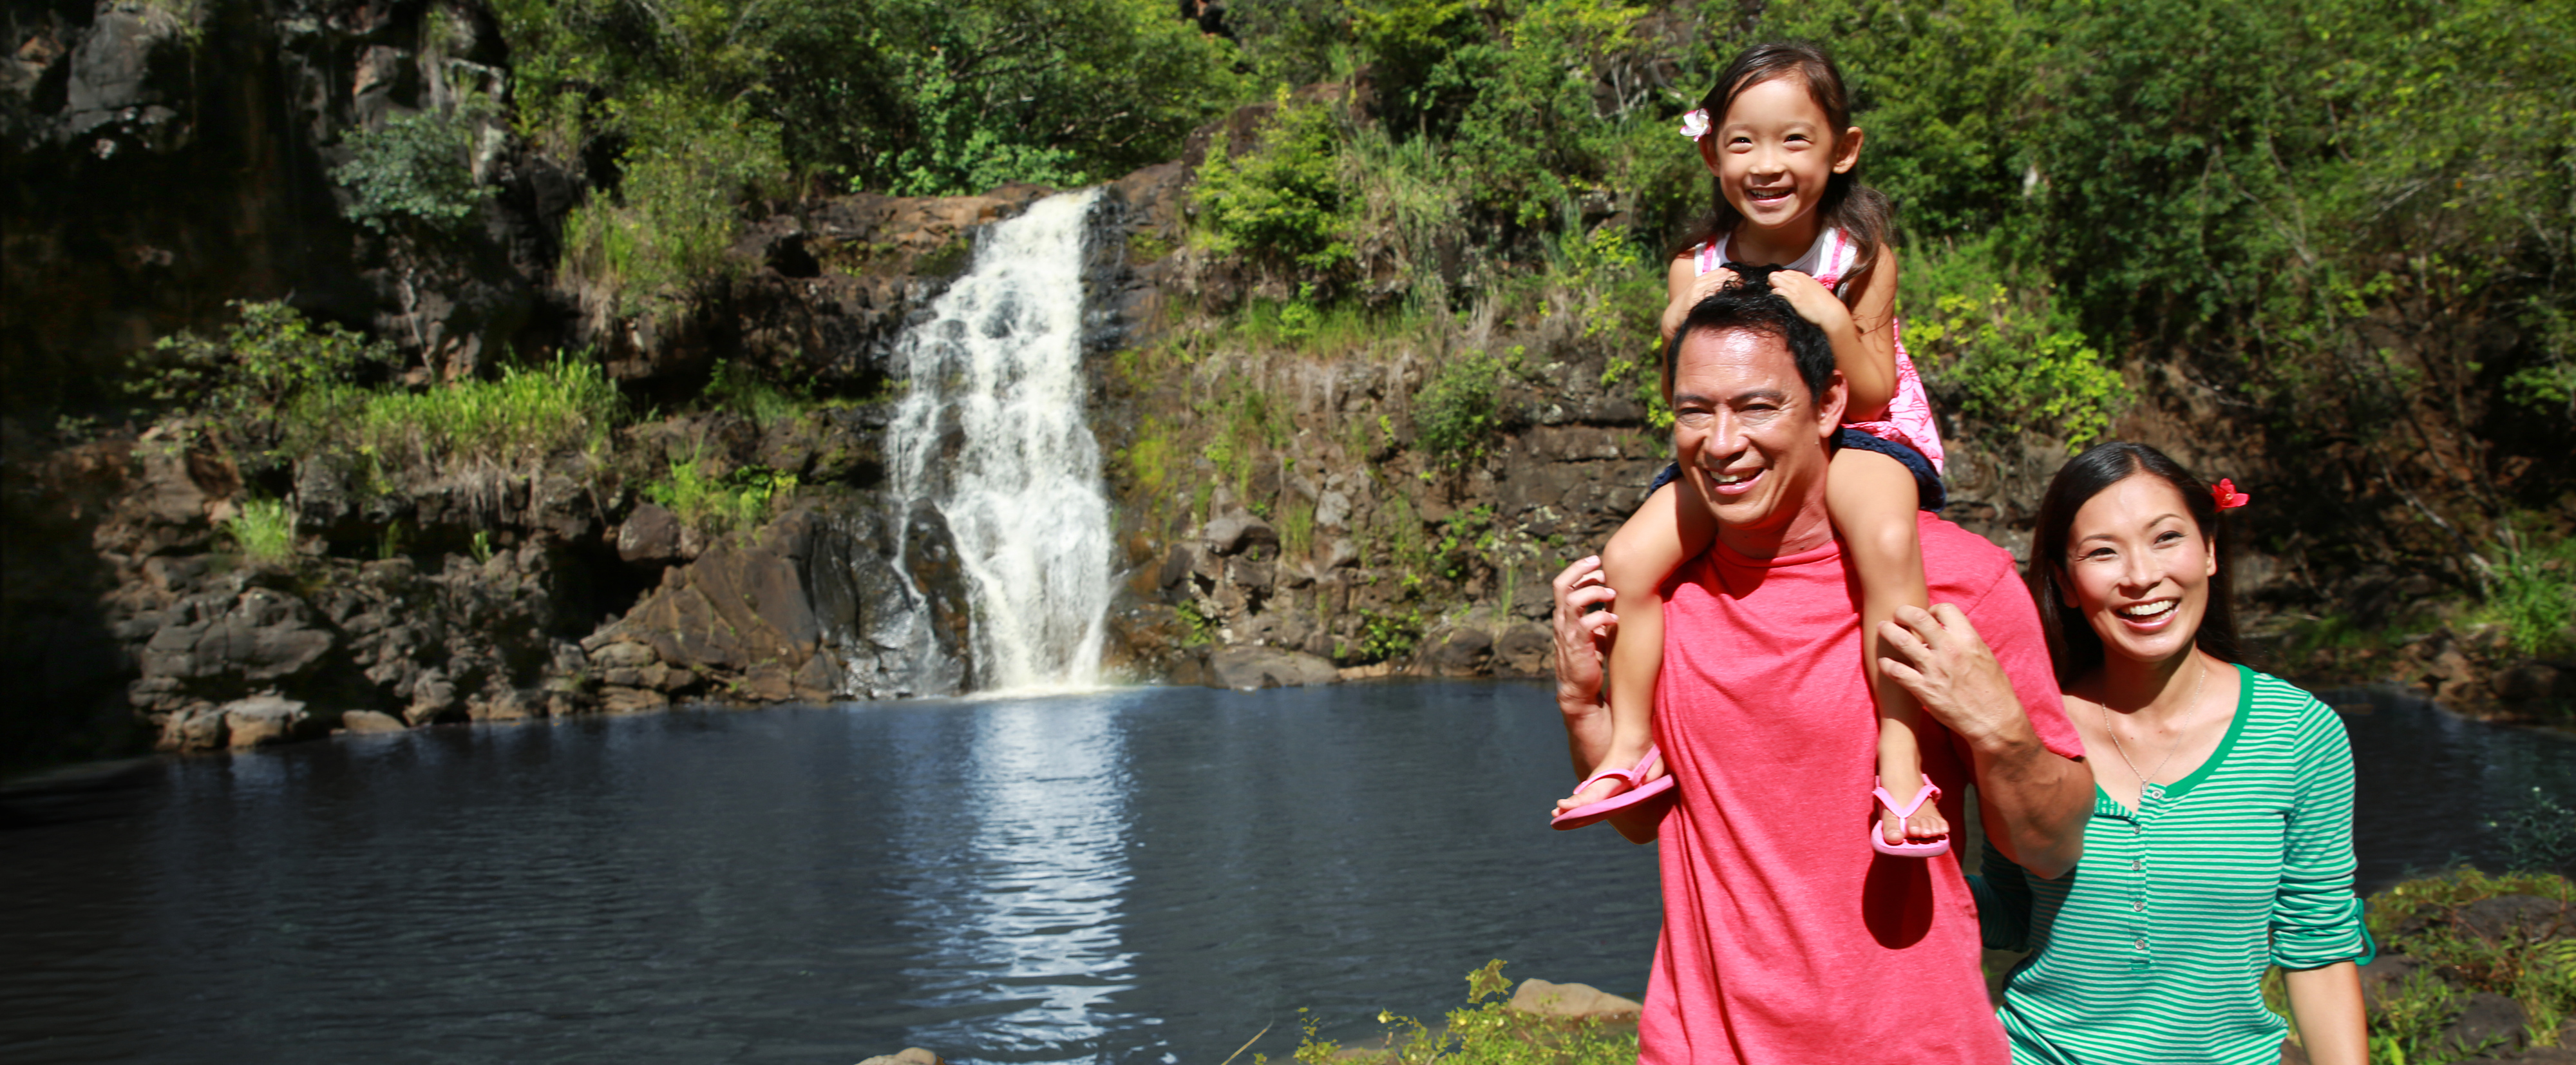 A little girl sits on her dad's shoulders while her parents smile in front of a lake with a waterfall